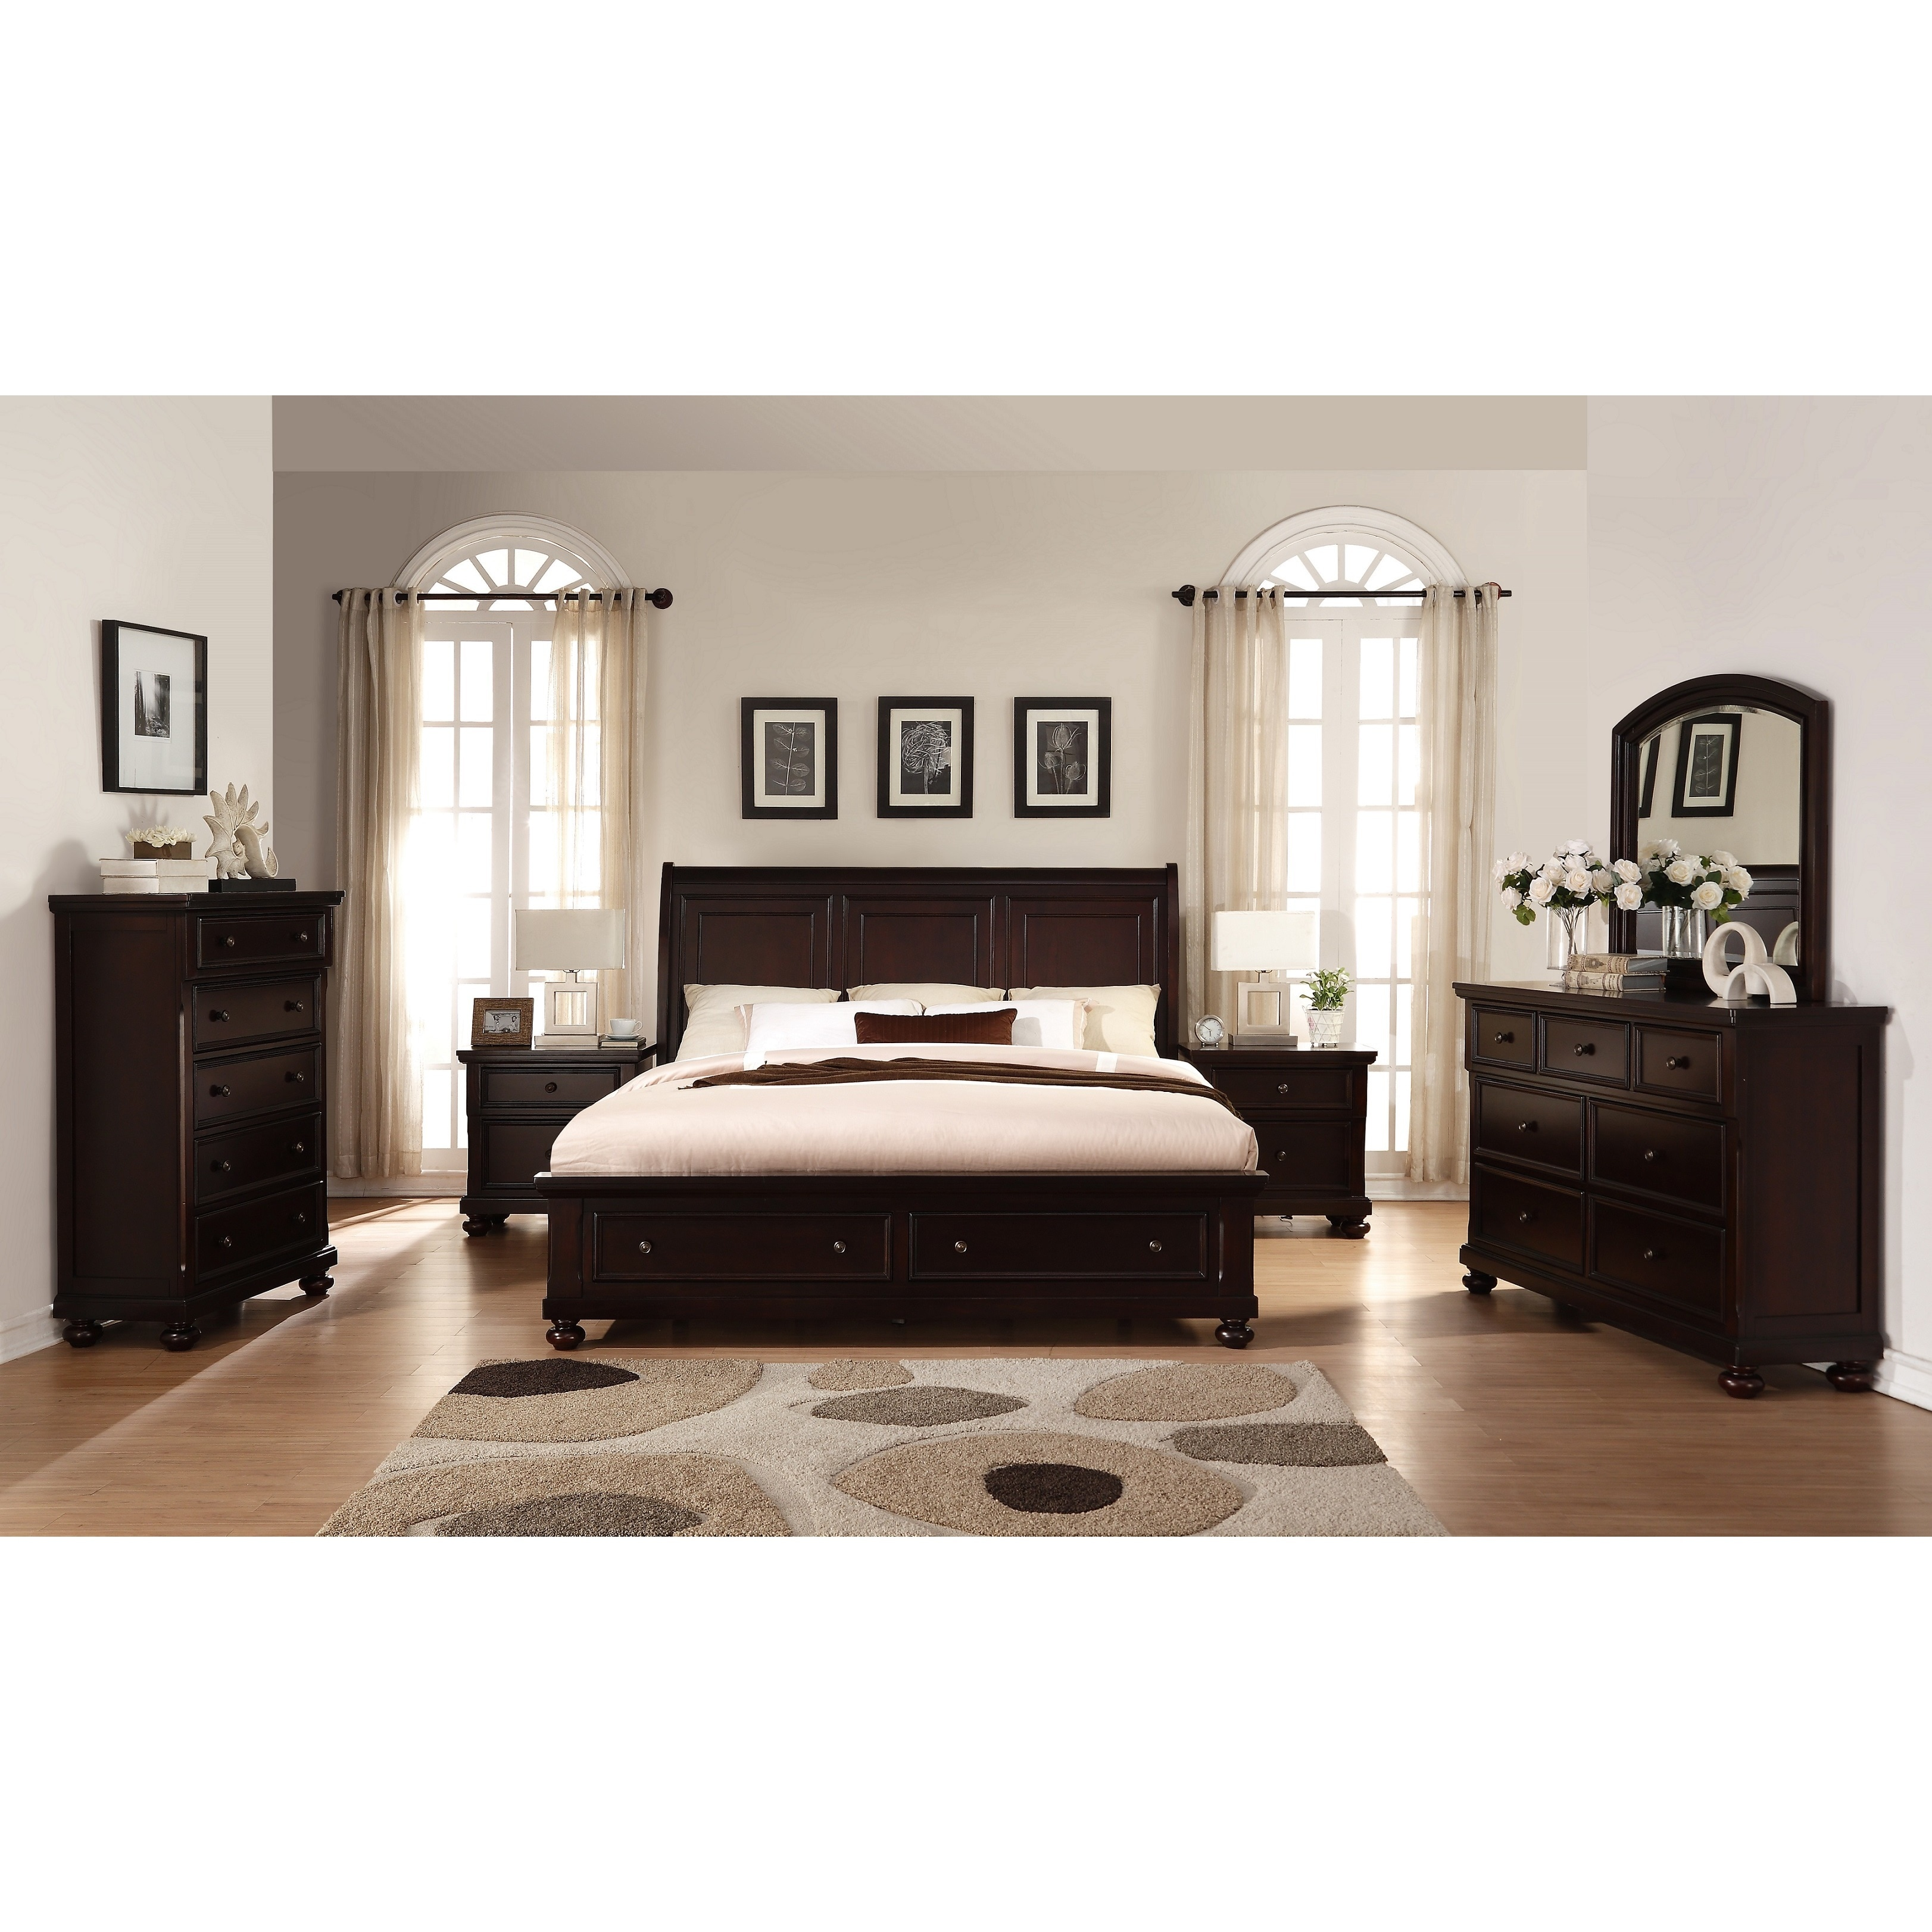 Shop Brishland Rustic Cherry Queen-size Storage Bedroom Set - On ...